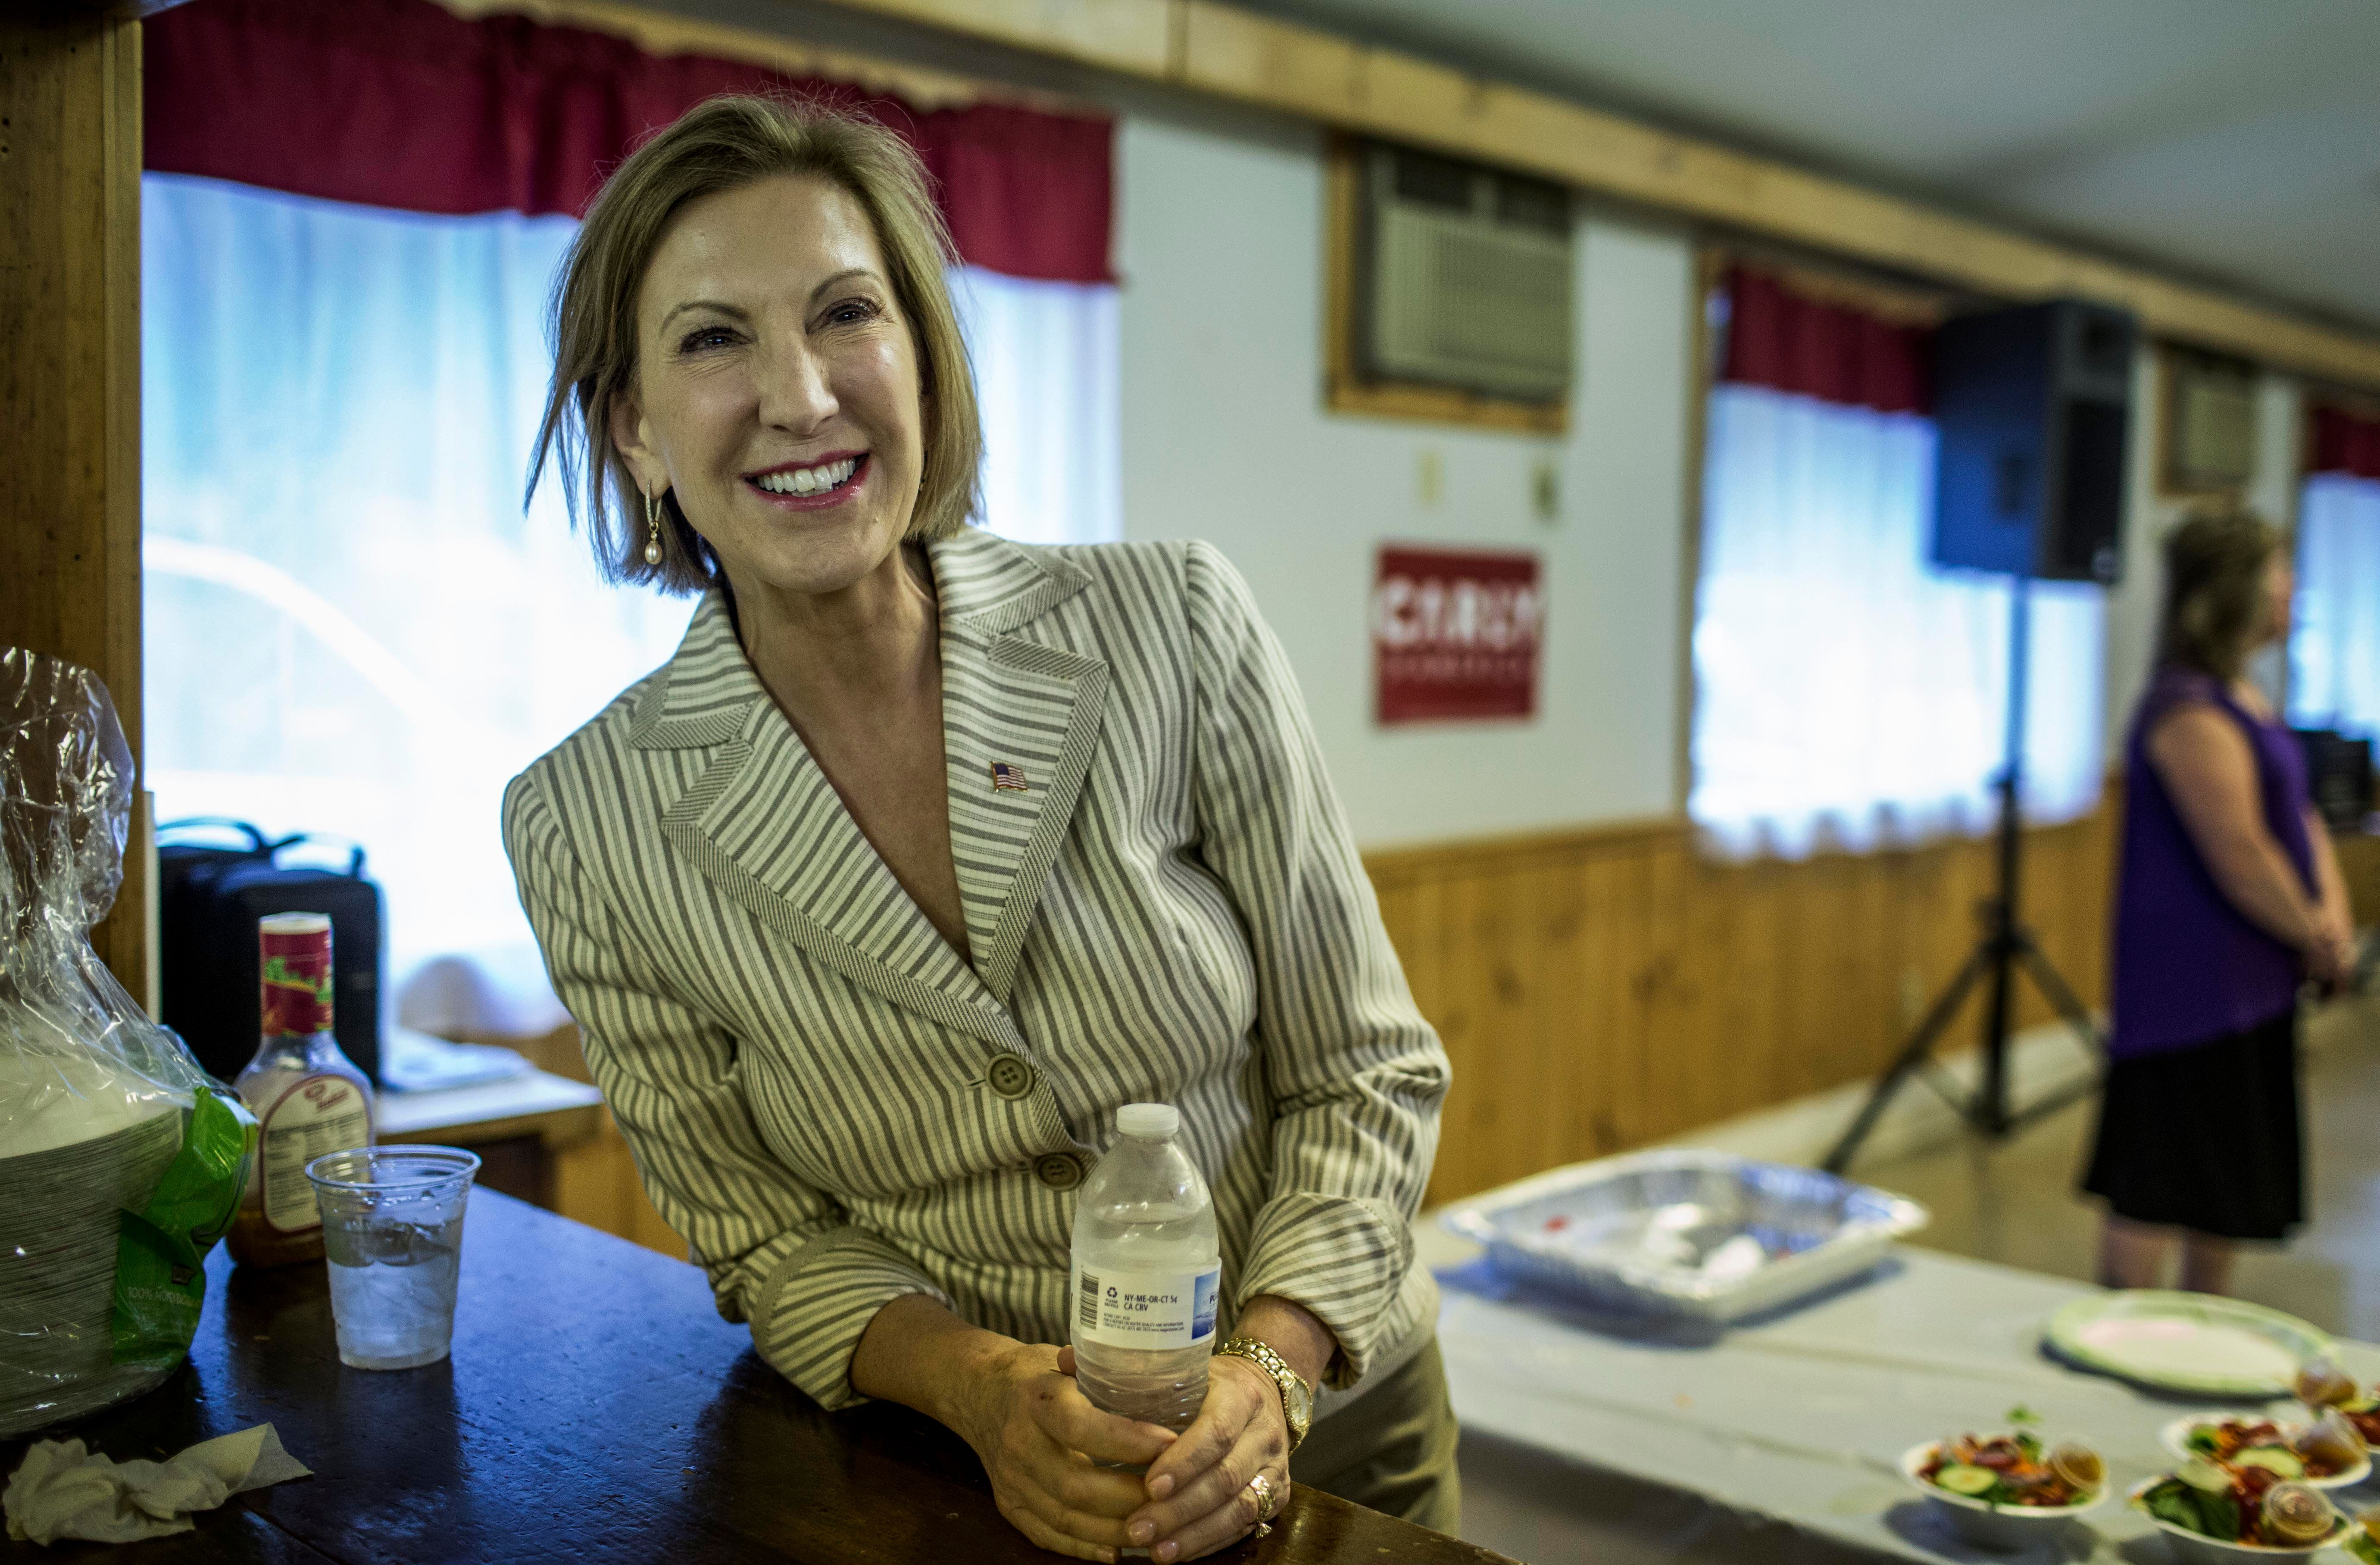 LITTLETON, NEW HAMPSHIRE - AUGUST 20:  Carly Fiorina meets New Hampshire voters at a Spaghetti Dinner in the north country of Littleton, New Hampshire on Thursday, August 20, 2015. (Photo by Melina Mara/The Washington Post via Getty Images)